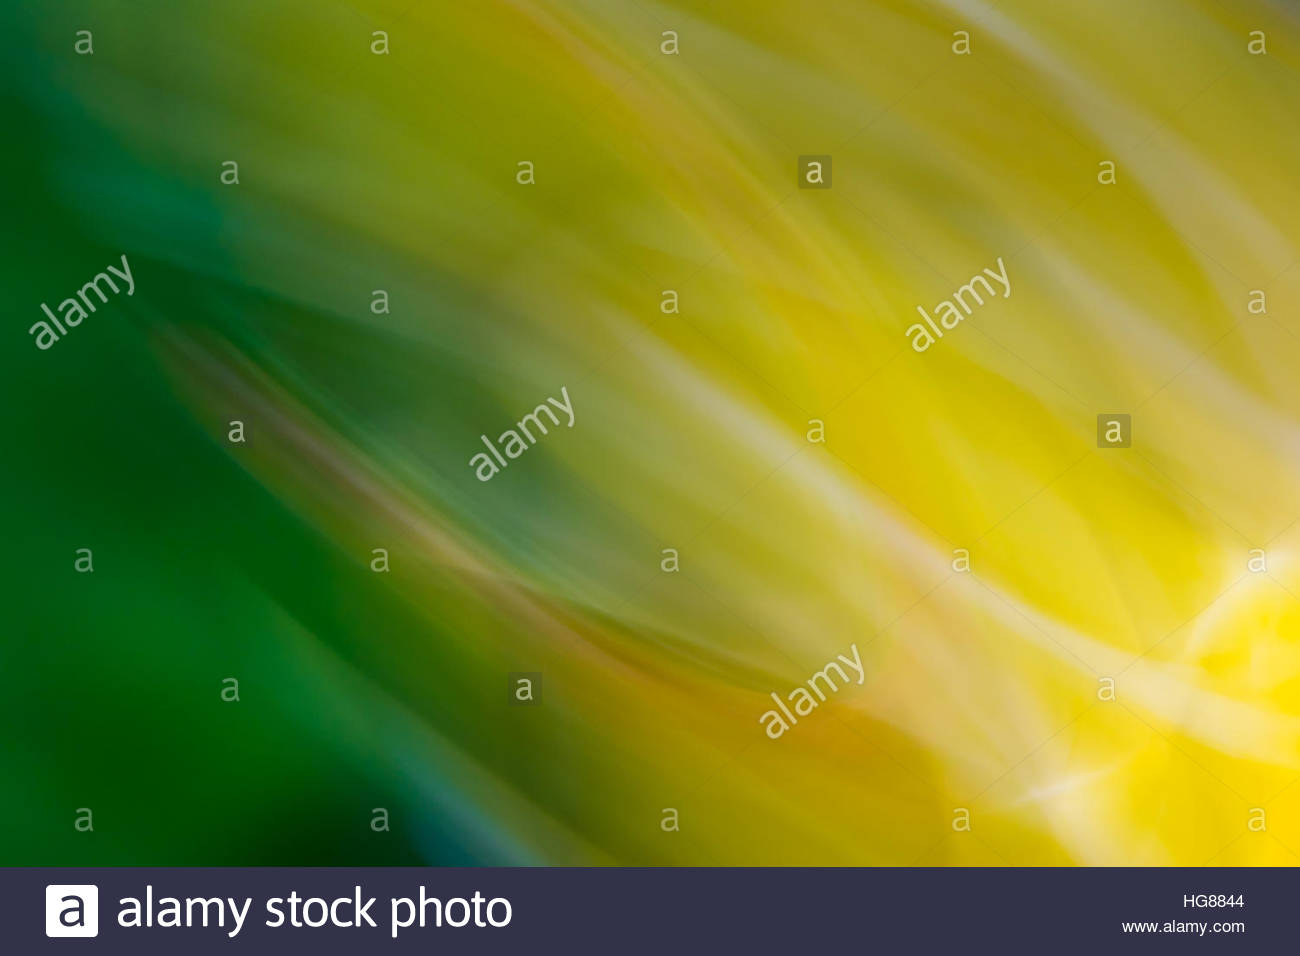 Bright yellows and greens from flowers and nature are abstracted and swirled in an active pattern - Stock Image